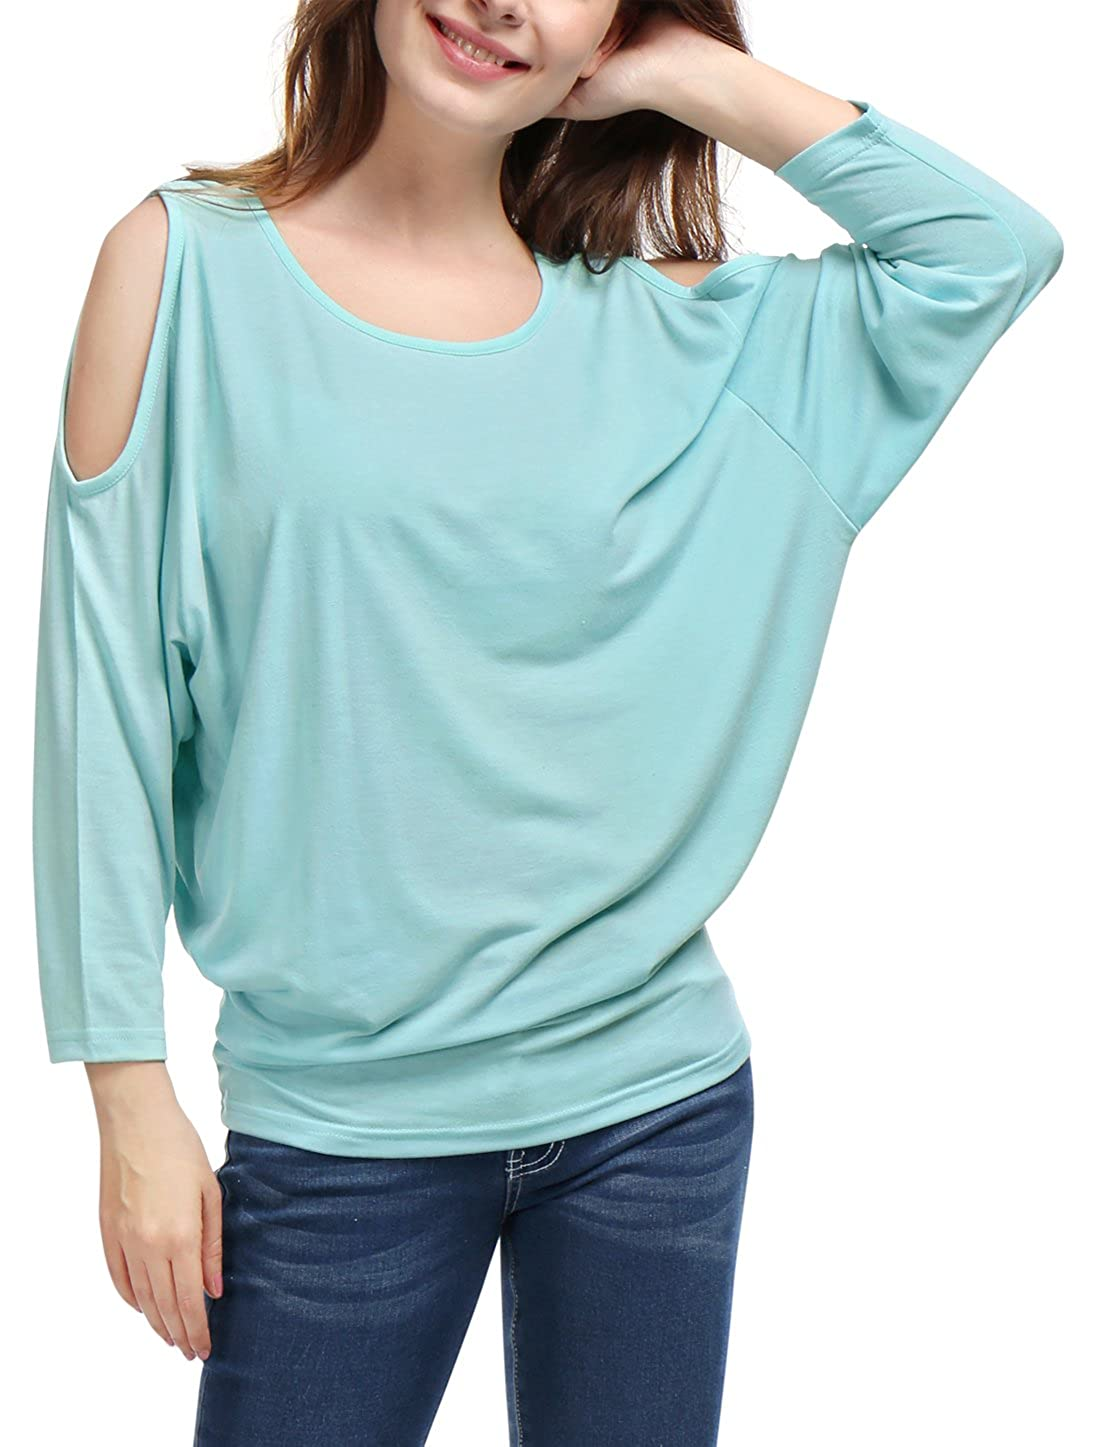 Allegra K Women's Scoop Neck Cut Out Shoulder Loose Batwing Top M Turquoise s18032400it6630